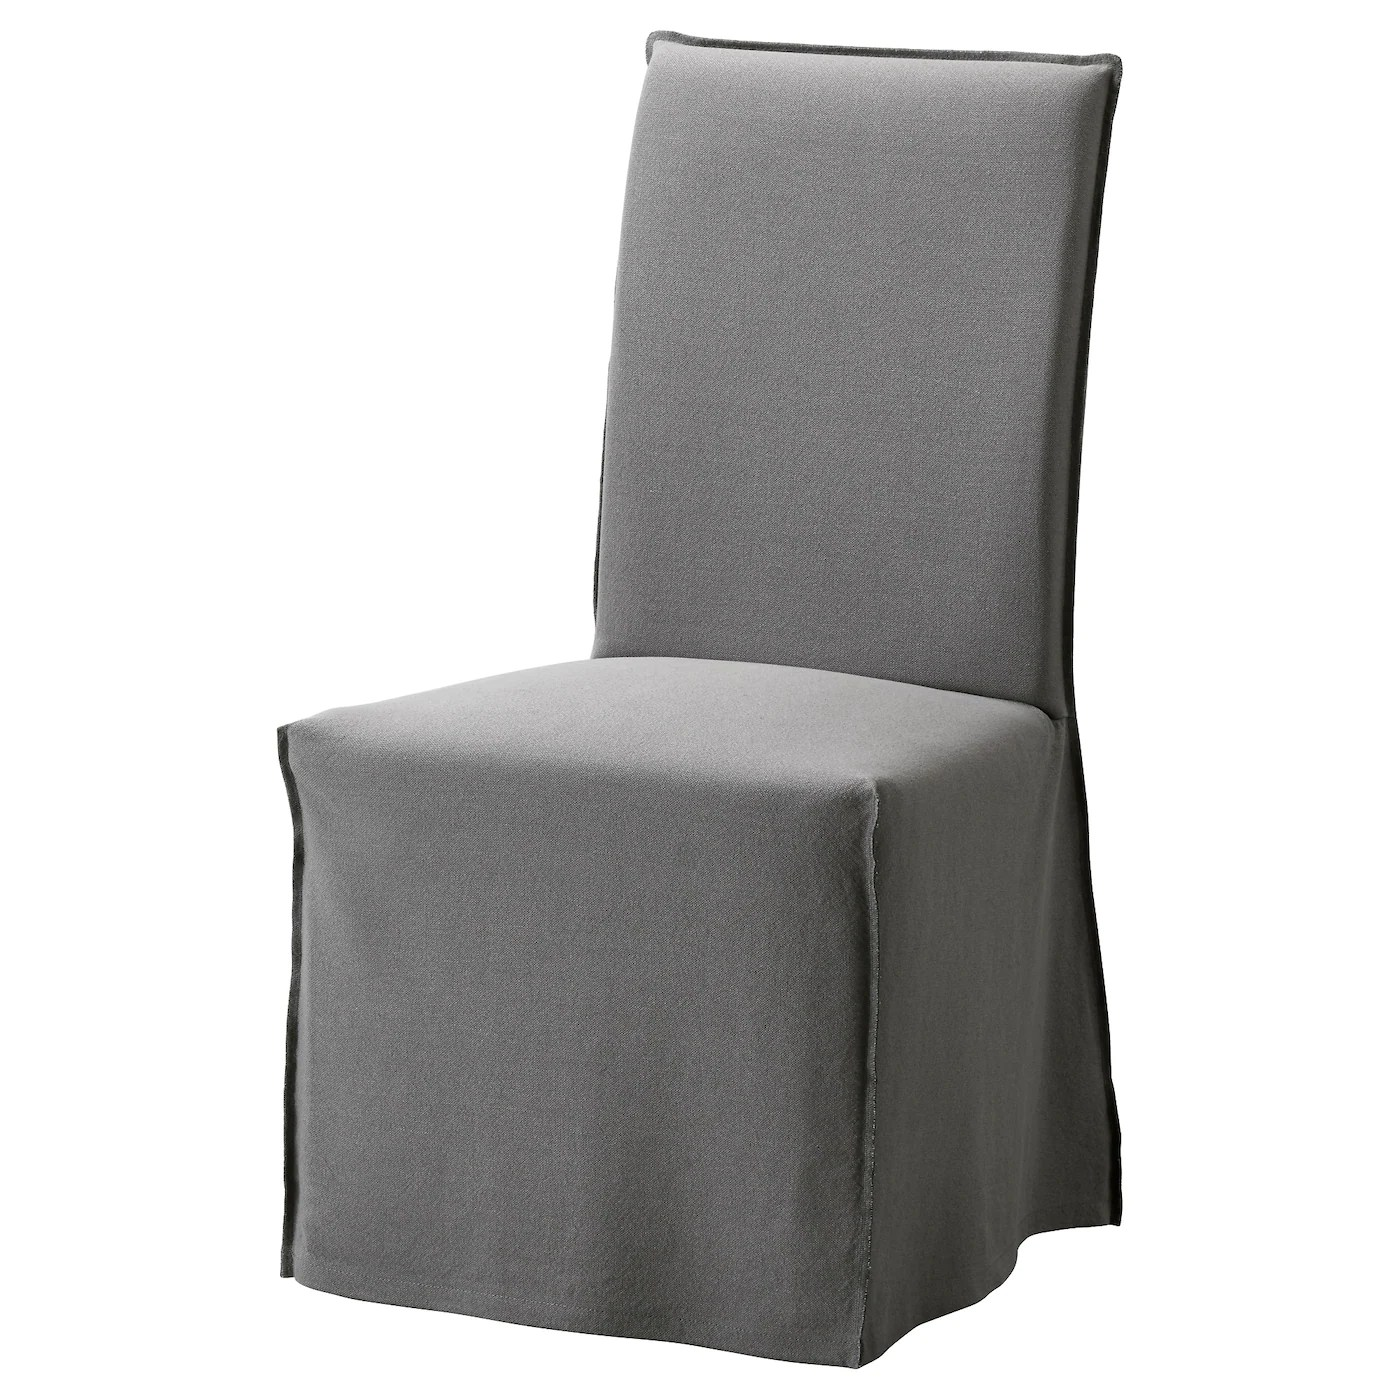 chair covers ireland booster high seat dining ikea dublin